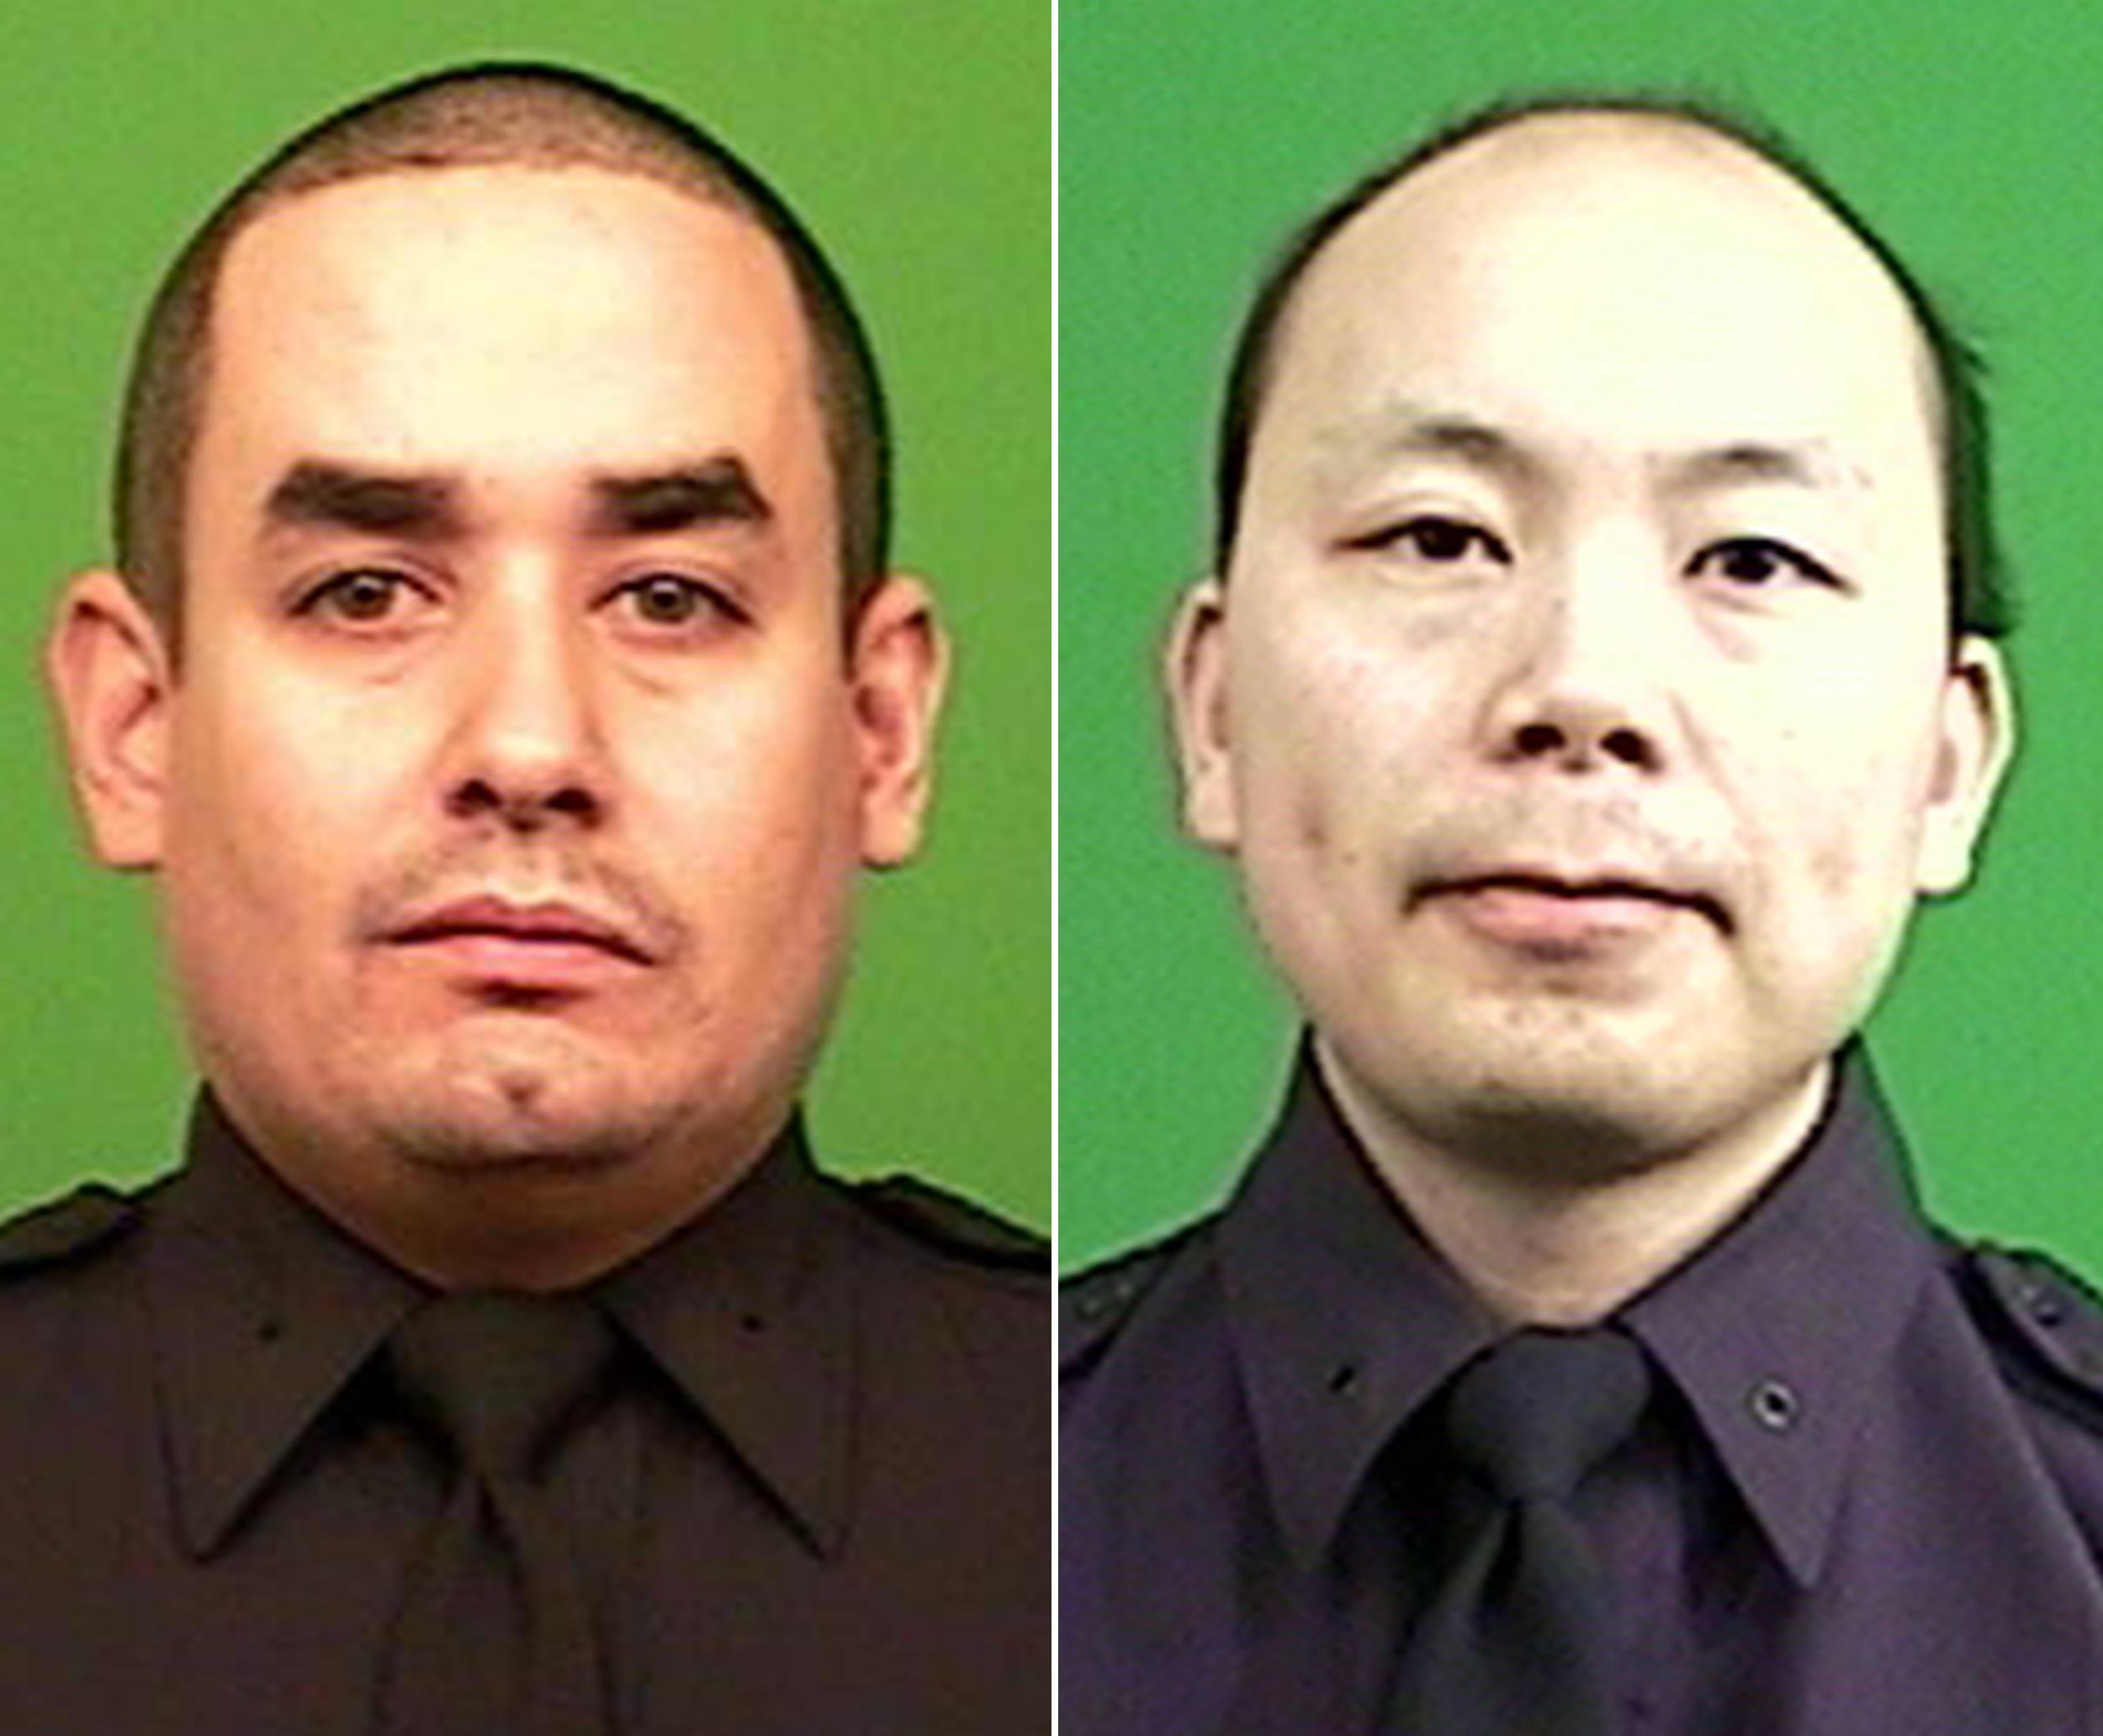 http://media4.s-nbcnews.com/i/newscms/2014_51/817791/141220-nypd-officers-killed-2243_74f7709929f0a360d196b6e500e64fb2.jpg